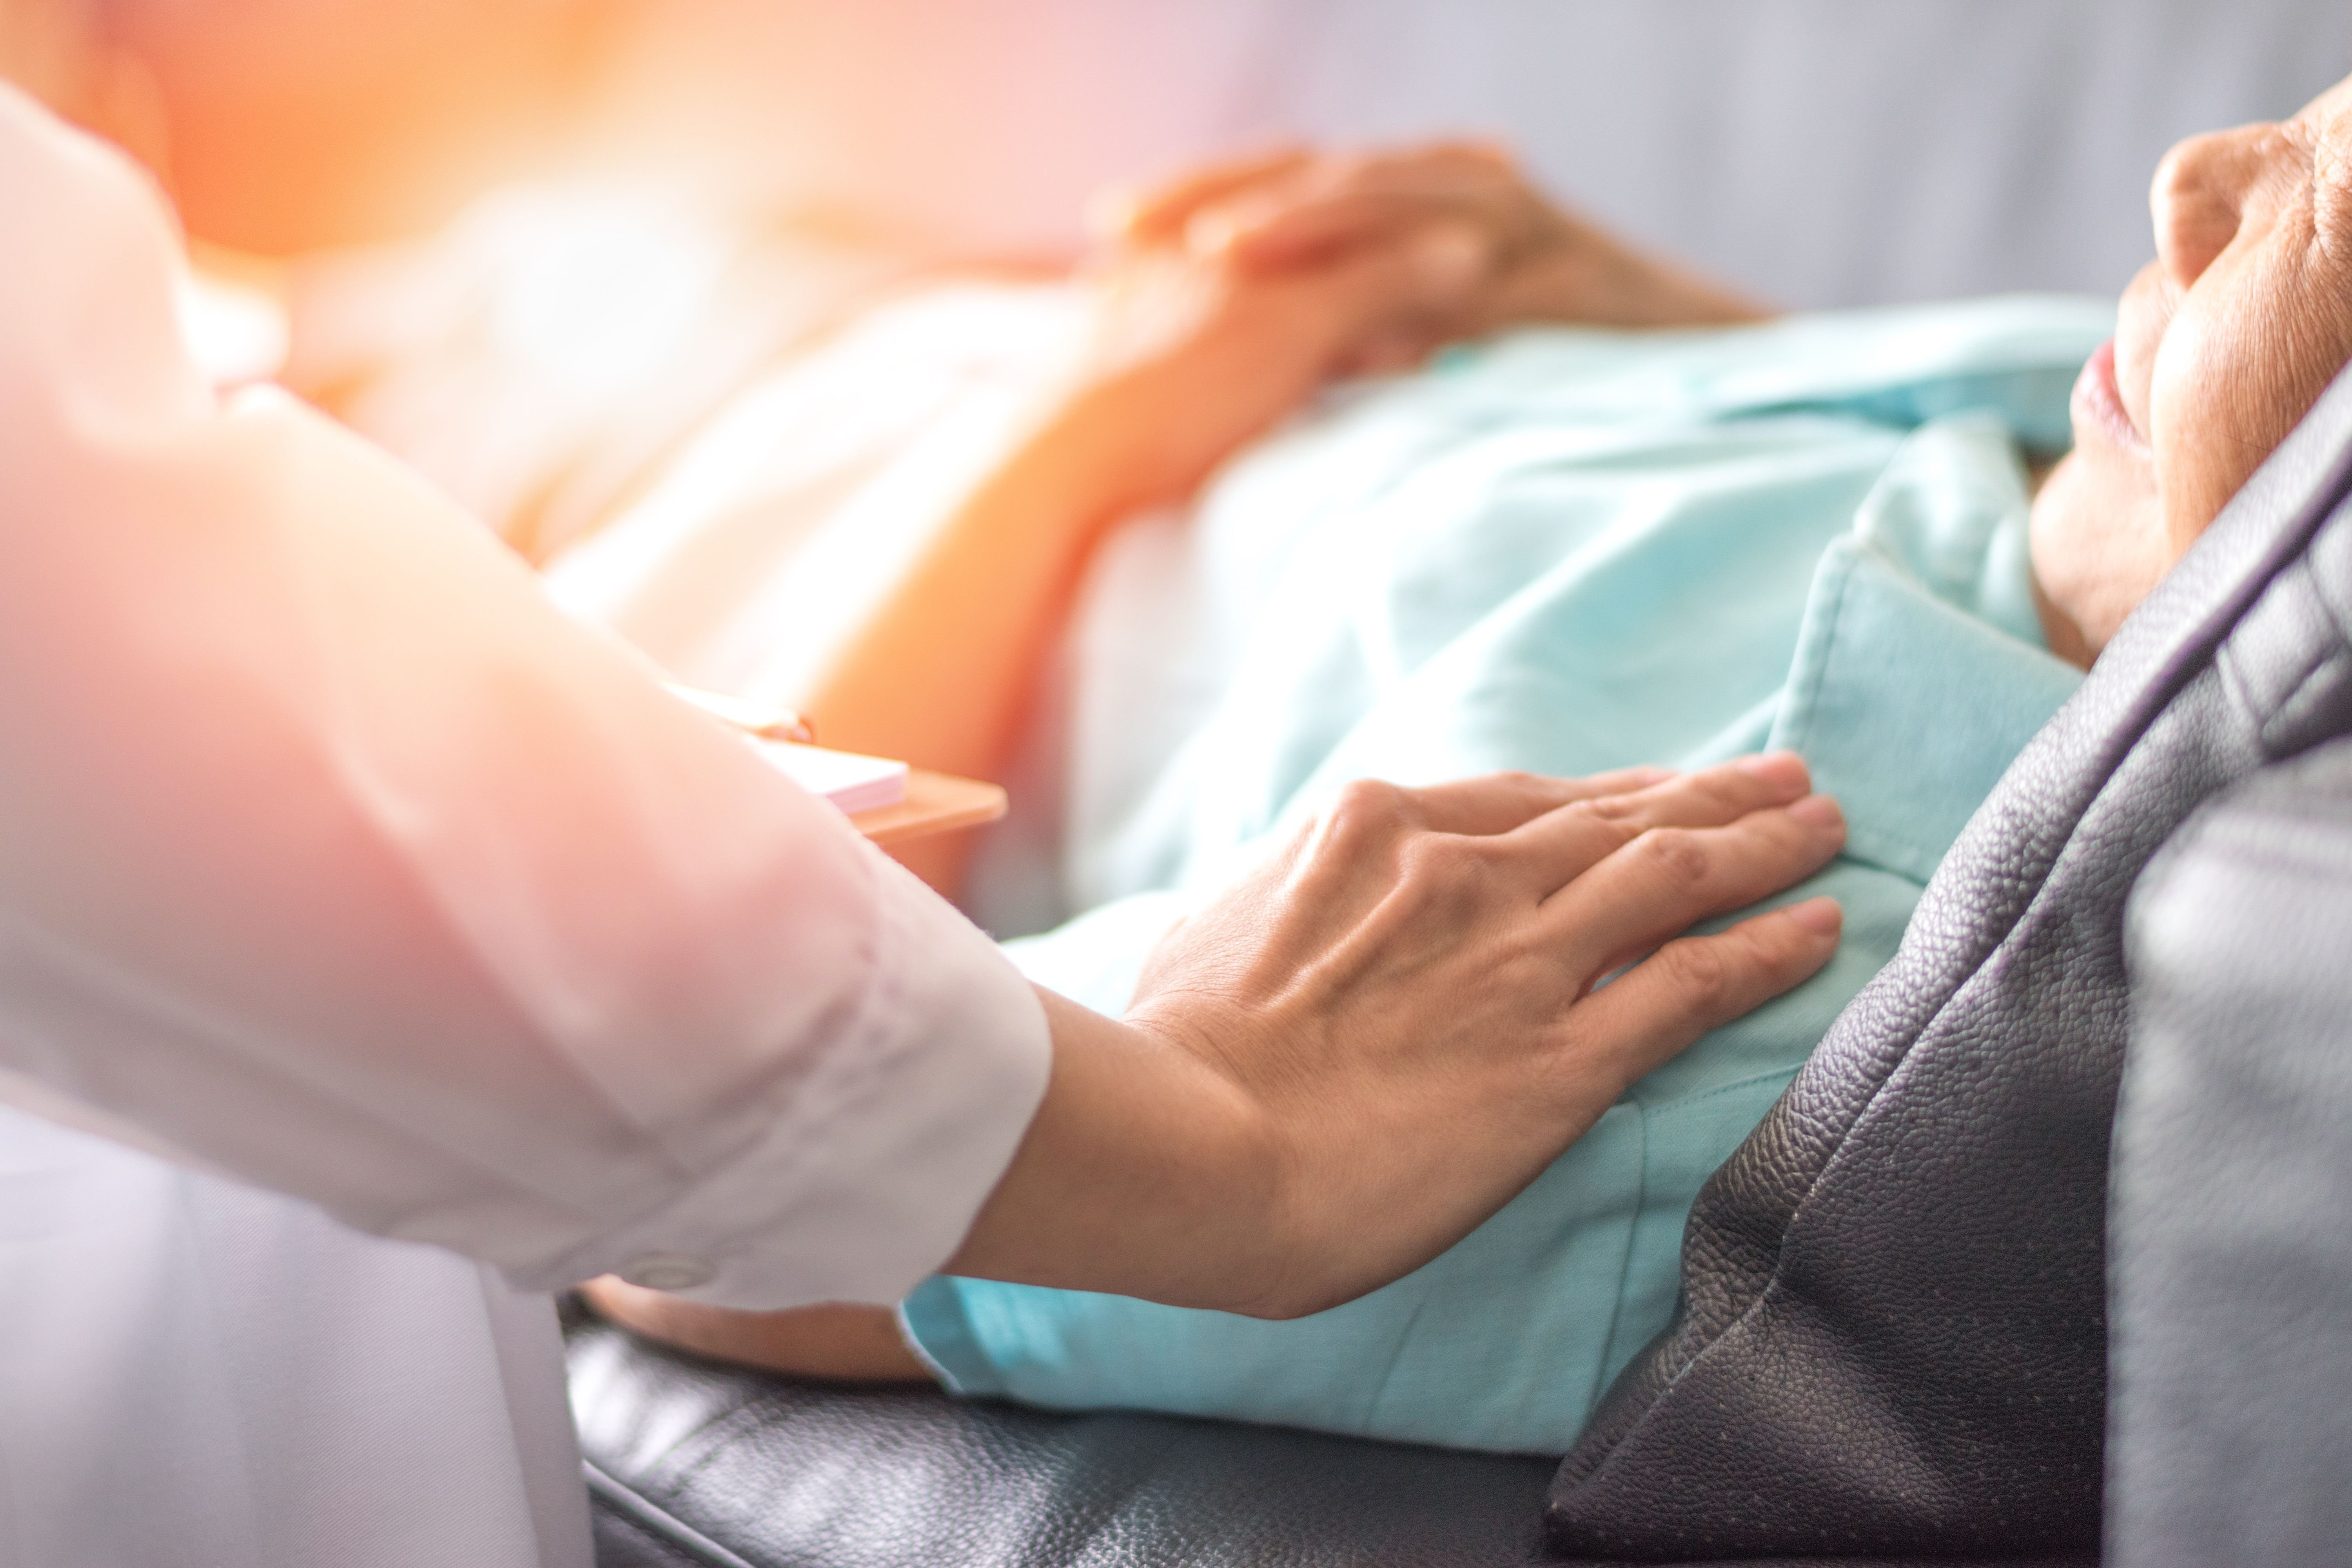 A doctor holds a patient's bed while going through a scan.   Source: Shutterstock